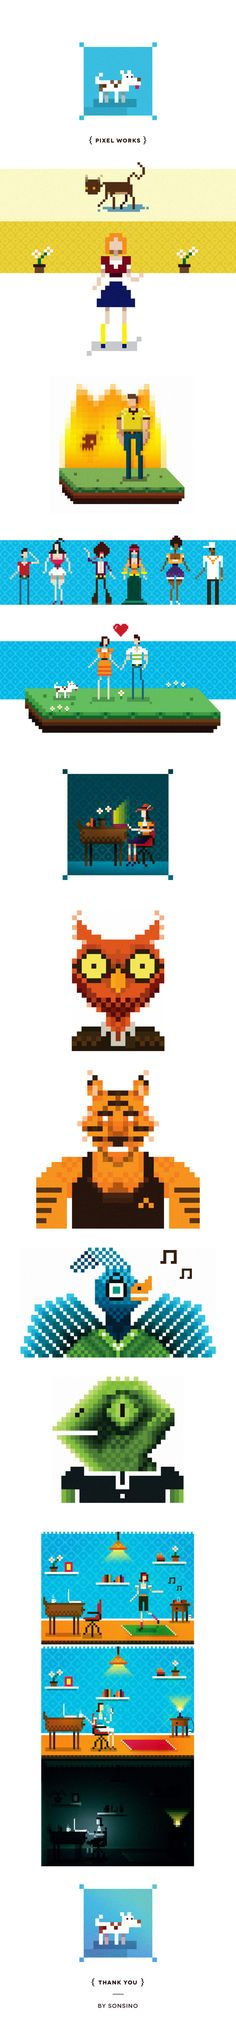 Pixel by Raphael Sonsino, via Behance